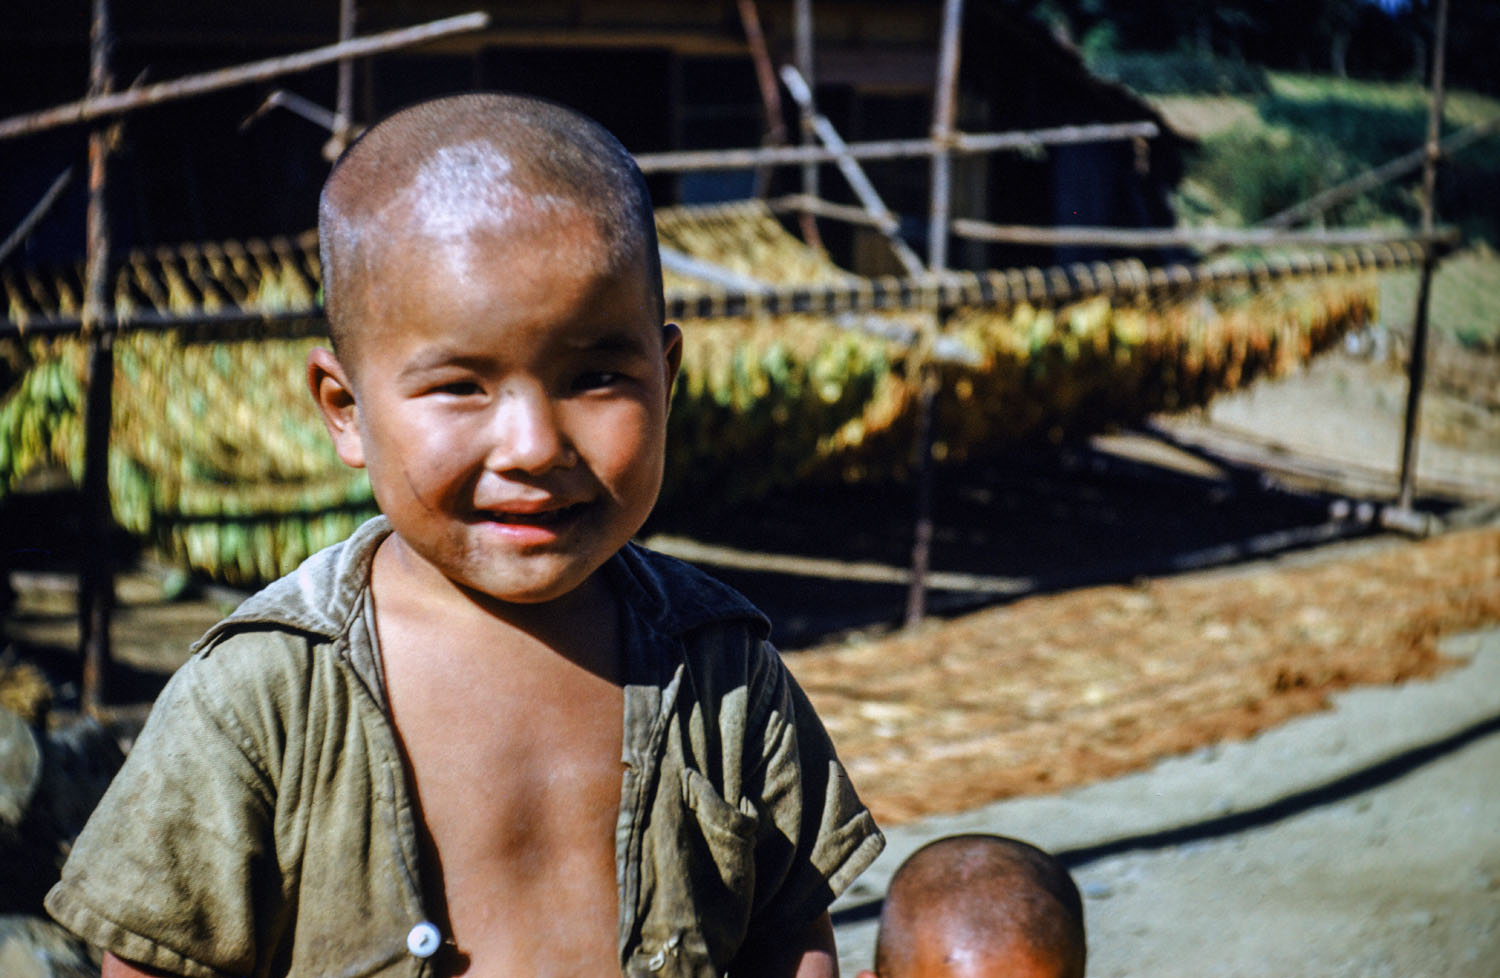 510- Young Boy in front of Tobacco Drying Racks